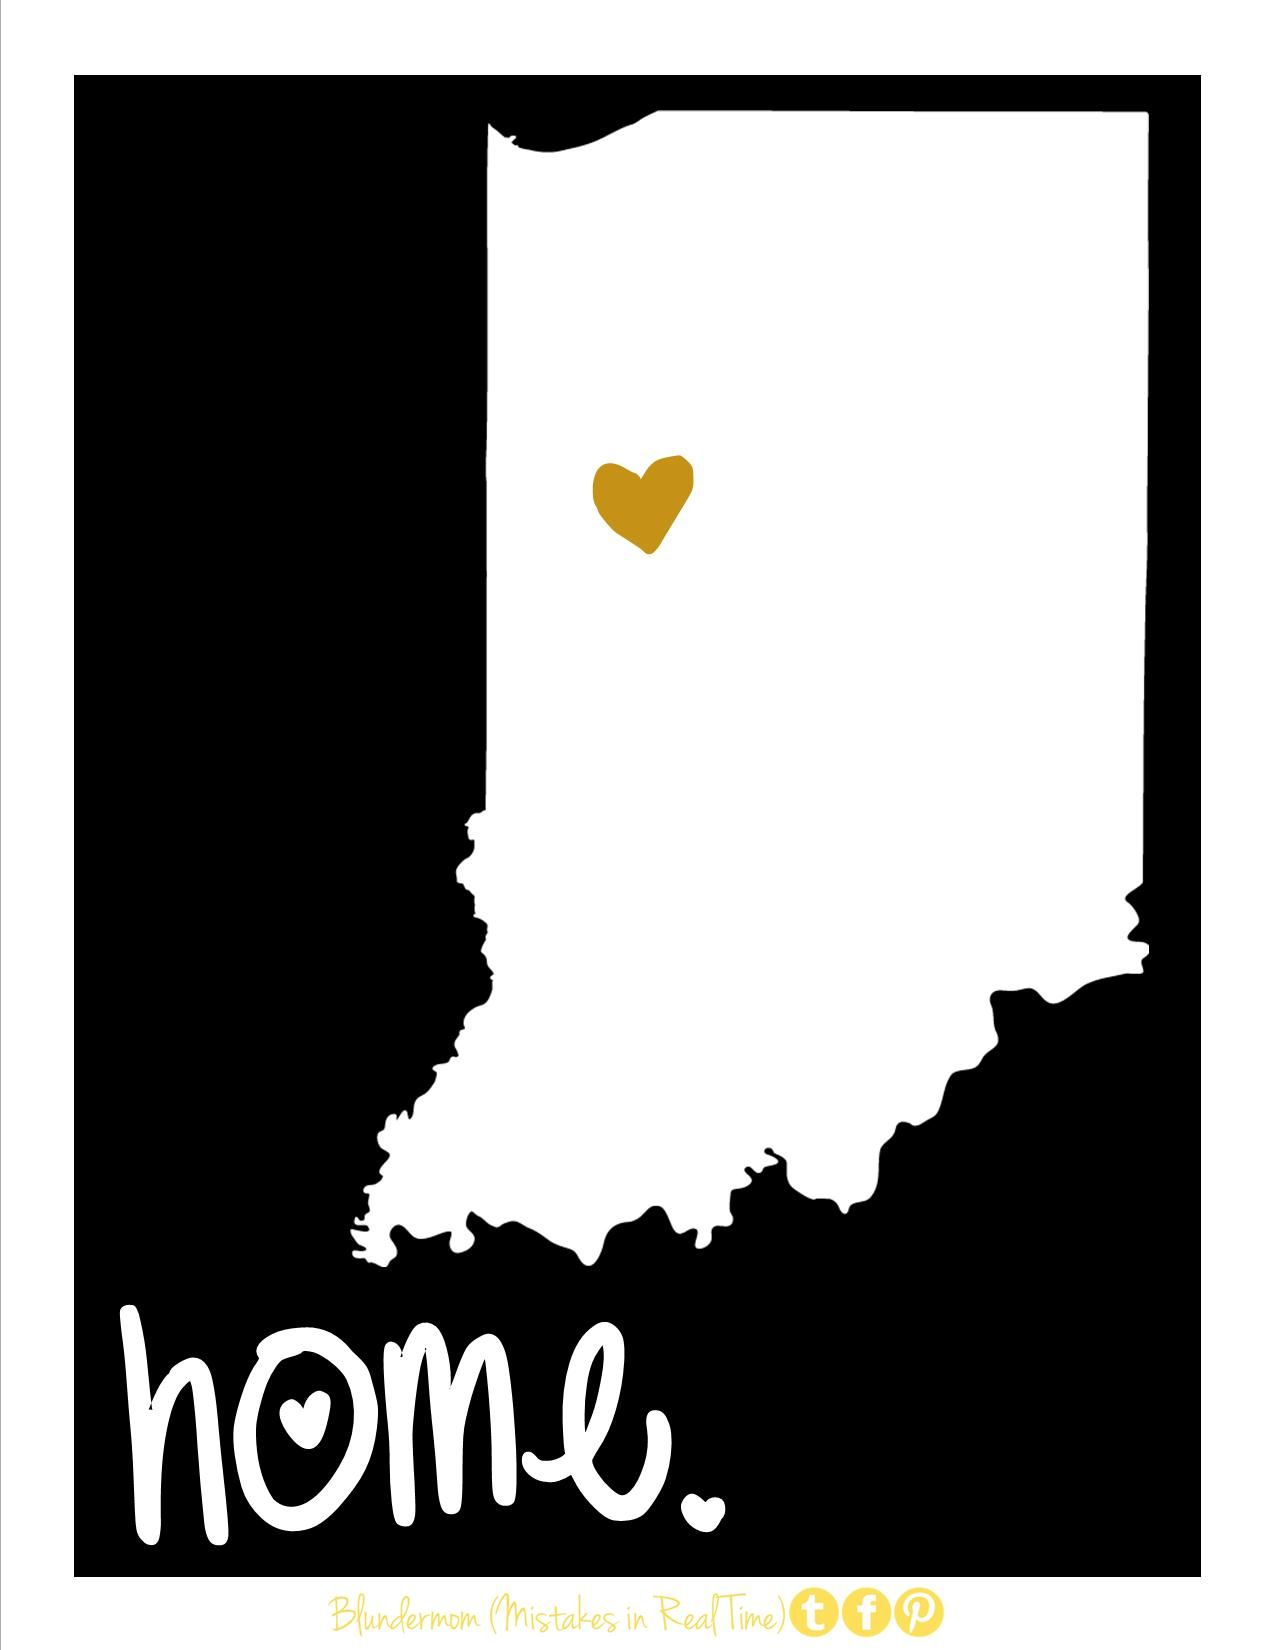 Color printing purdue - Home Purdue I Want This Framed And Hanging In My Home